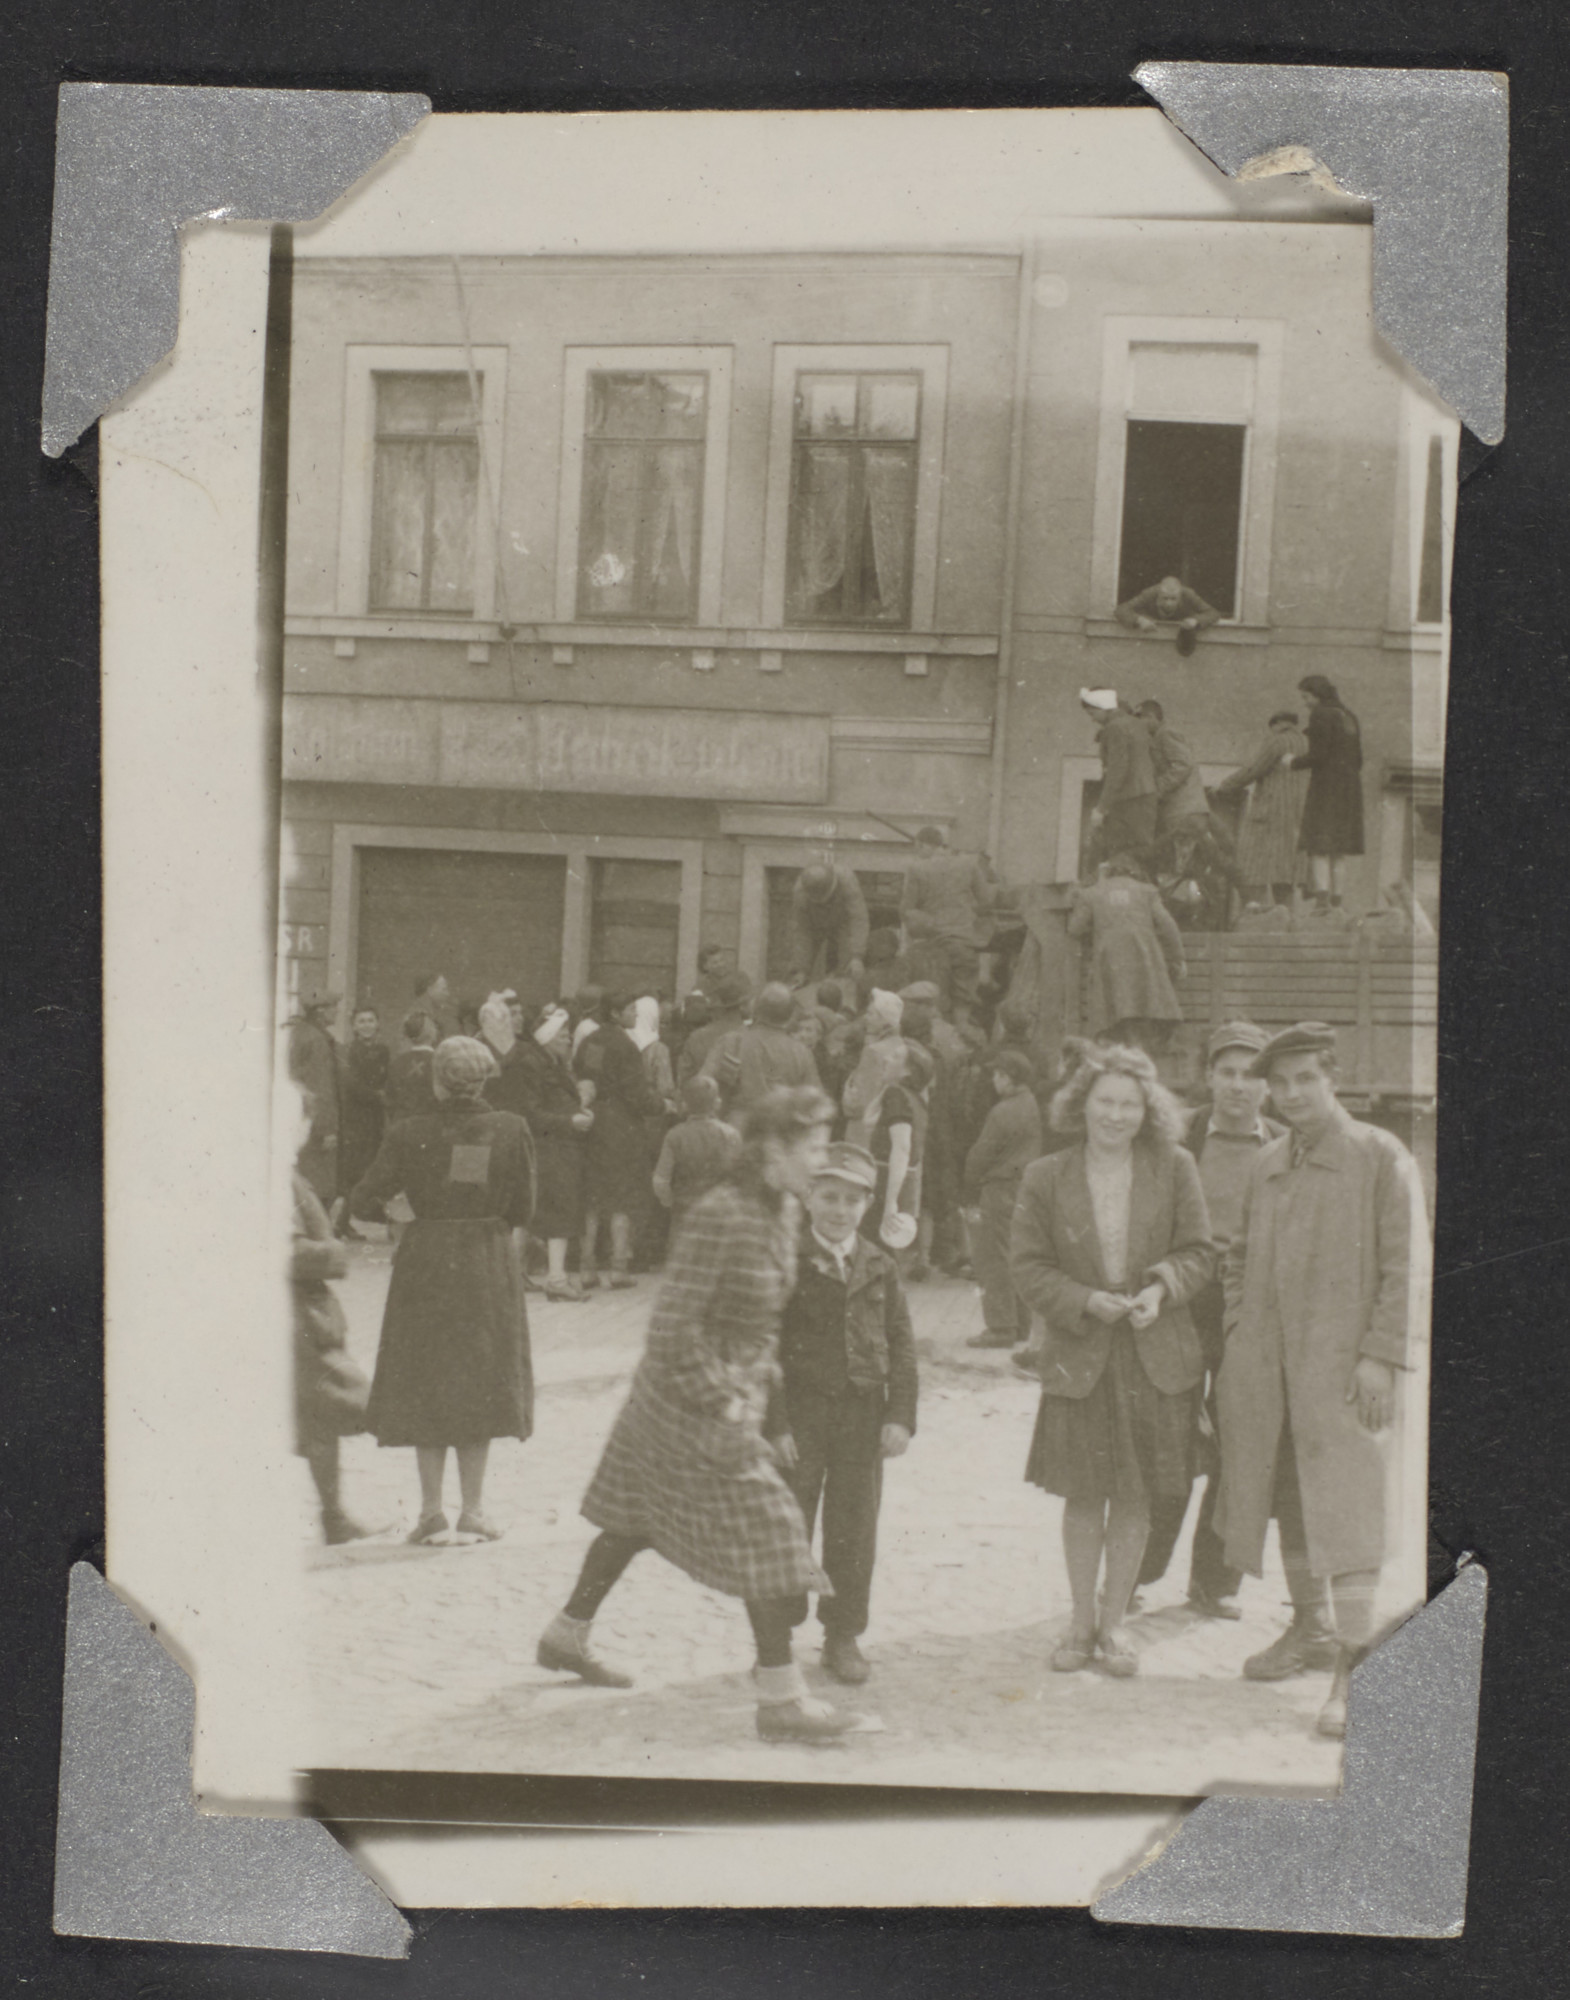 Young Hungarian Jewish refugees gather in the street in Waldenberg.